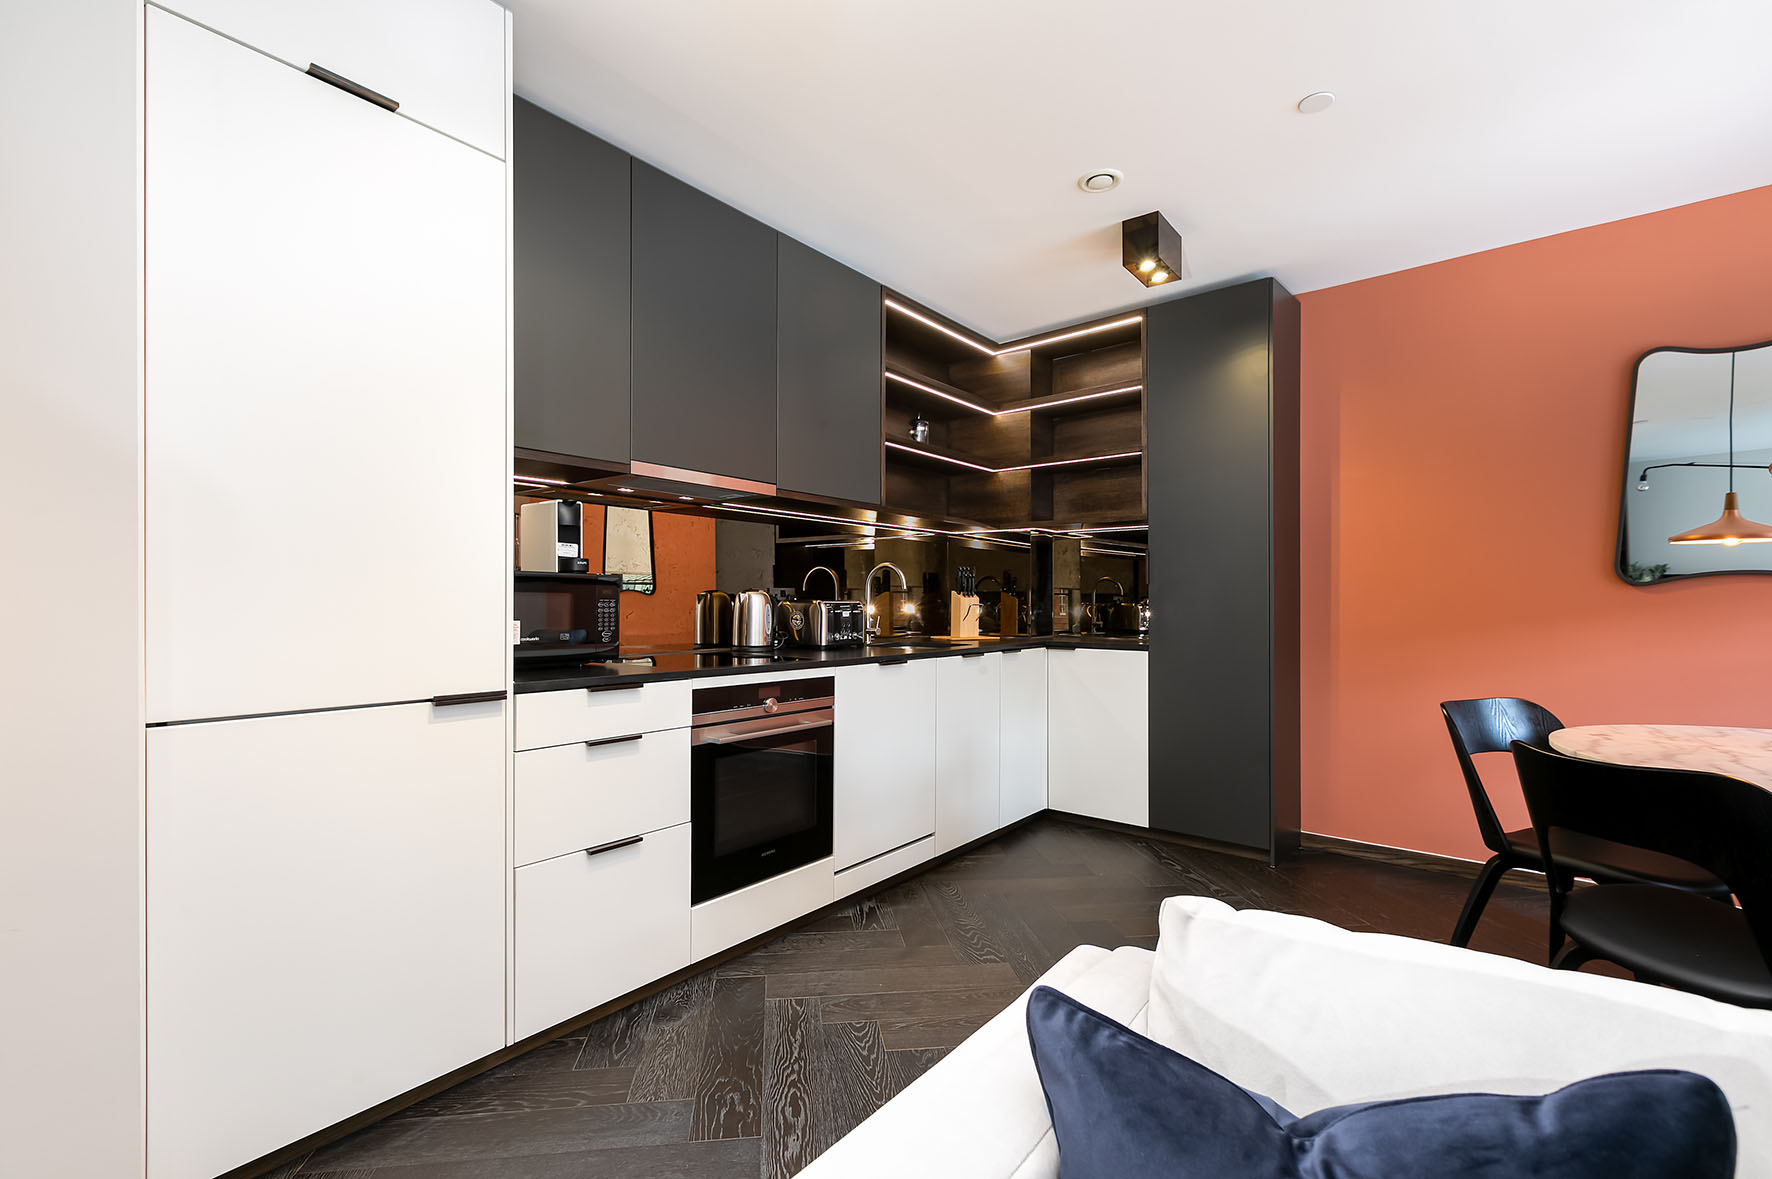 Lovelydays luxury service apartment rental - London - Soho - Noel Street VII - Lovelysuite - 1 bedrooms - 1 bathrooms - Luxury kitchen - 241815d93f32 - Lovelydays